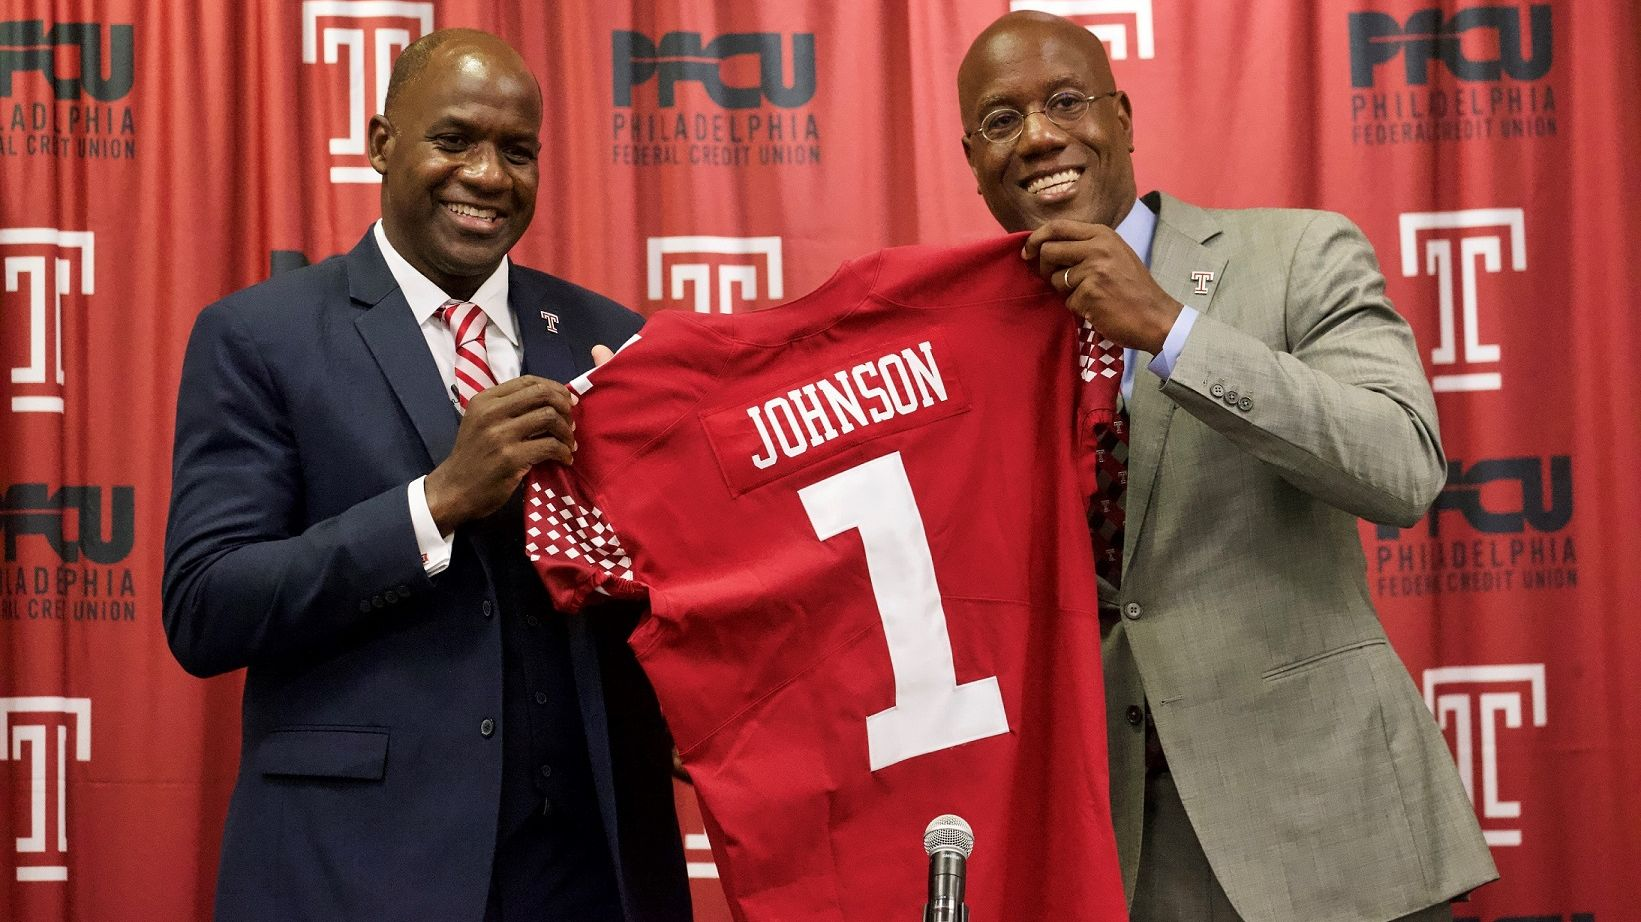 Arthur Johnson pictured with President Wingard, holding Johnson's replica Temple jersey.